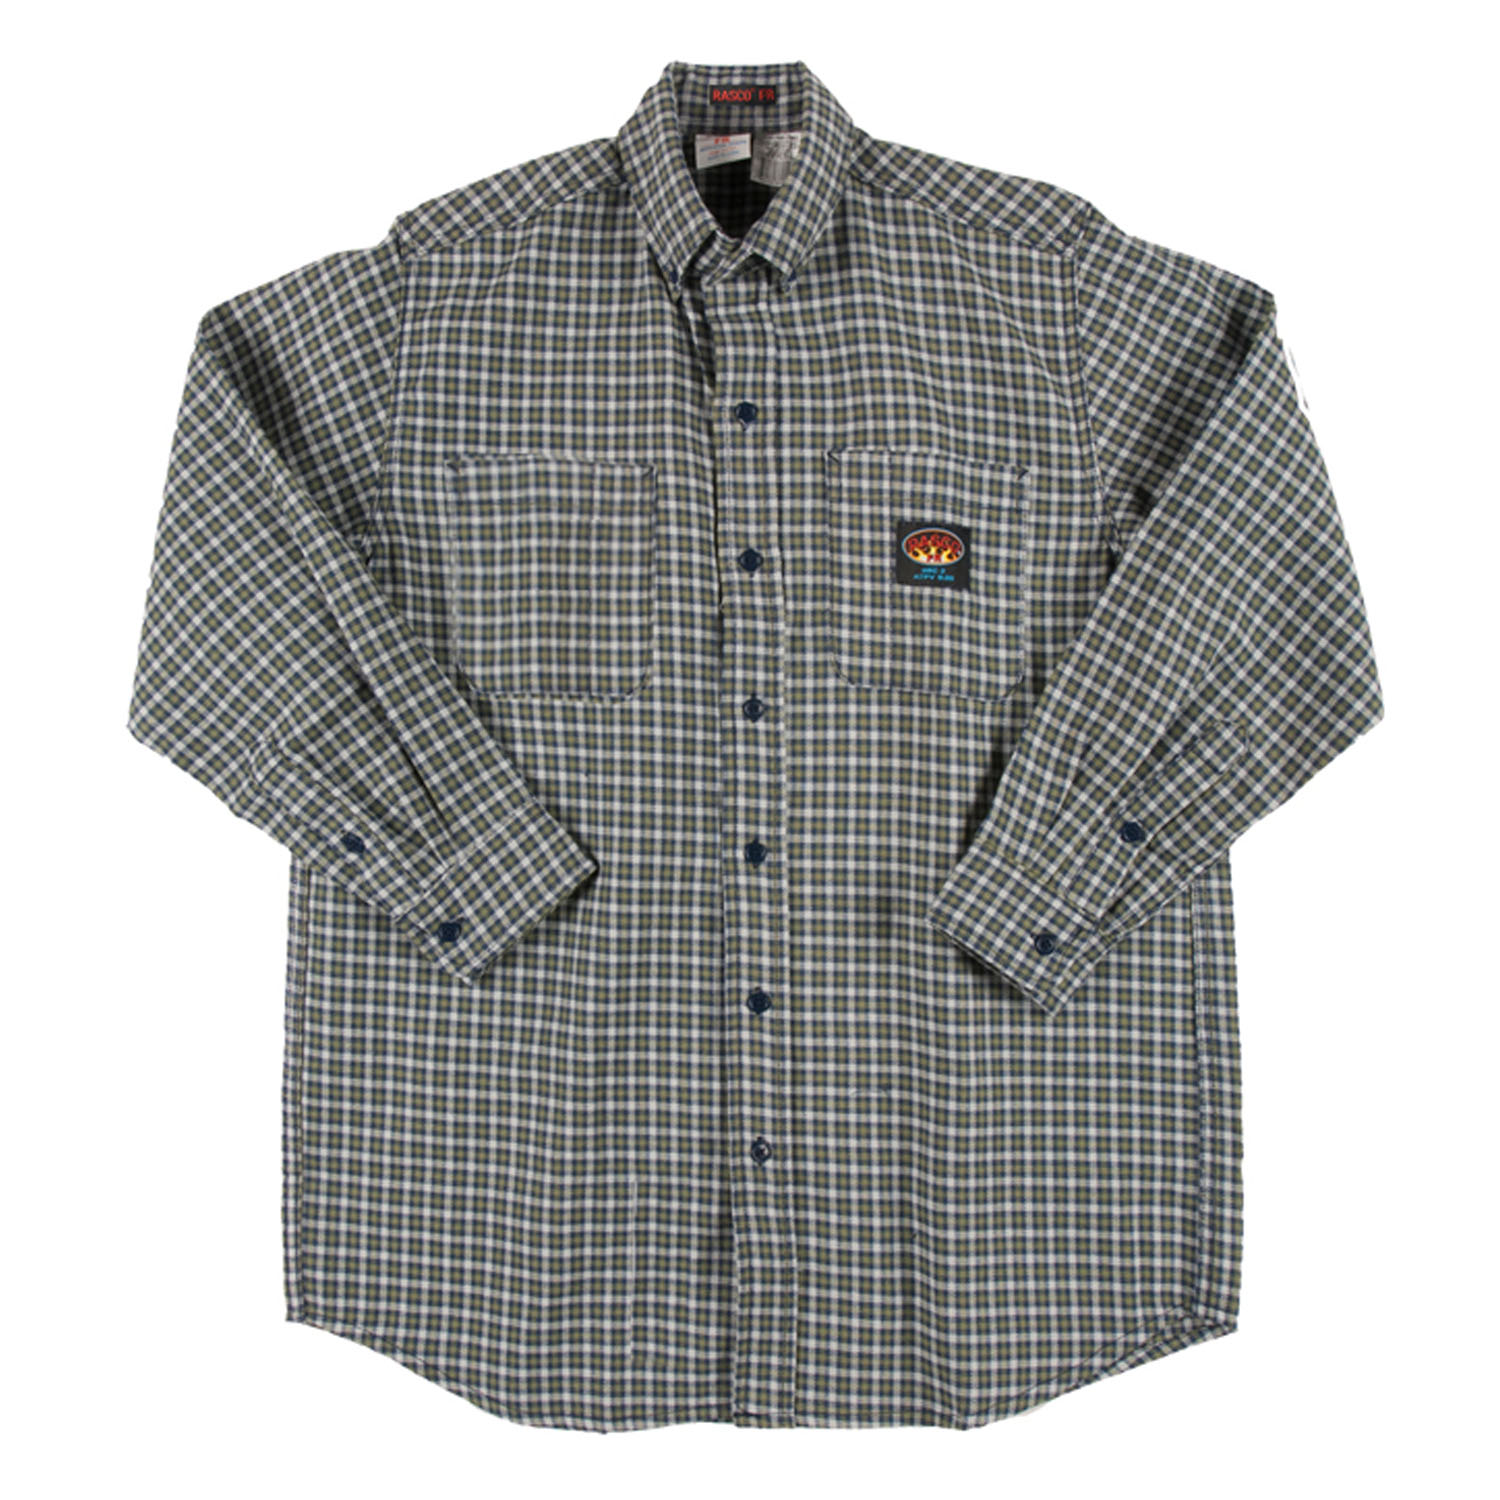 Mens Blue Plaid Shirt